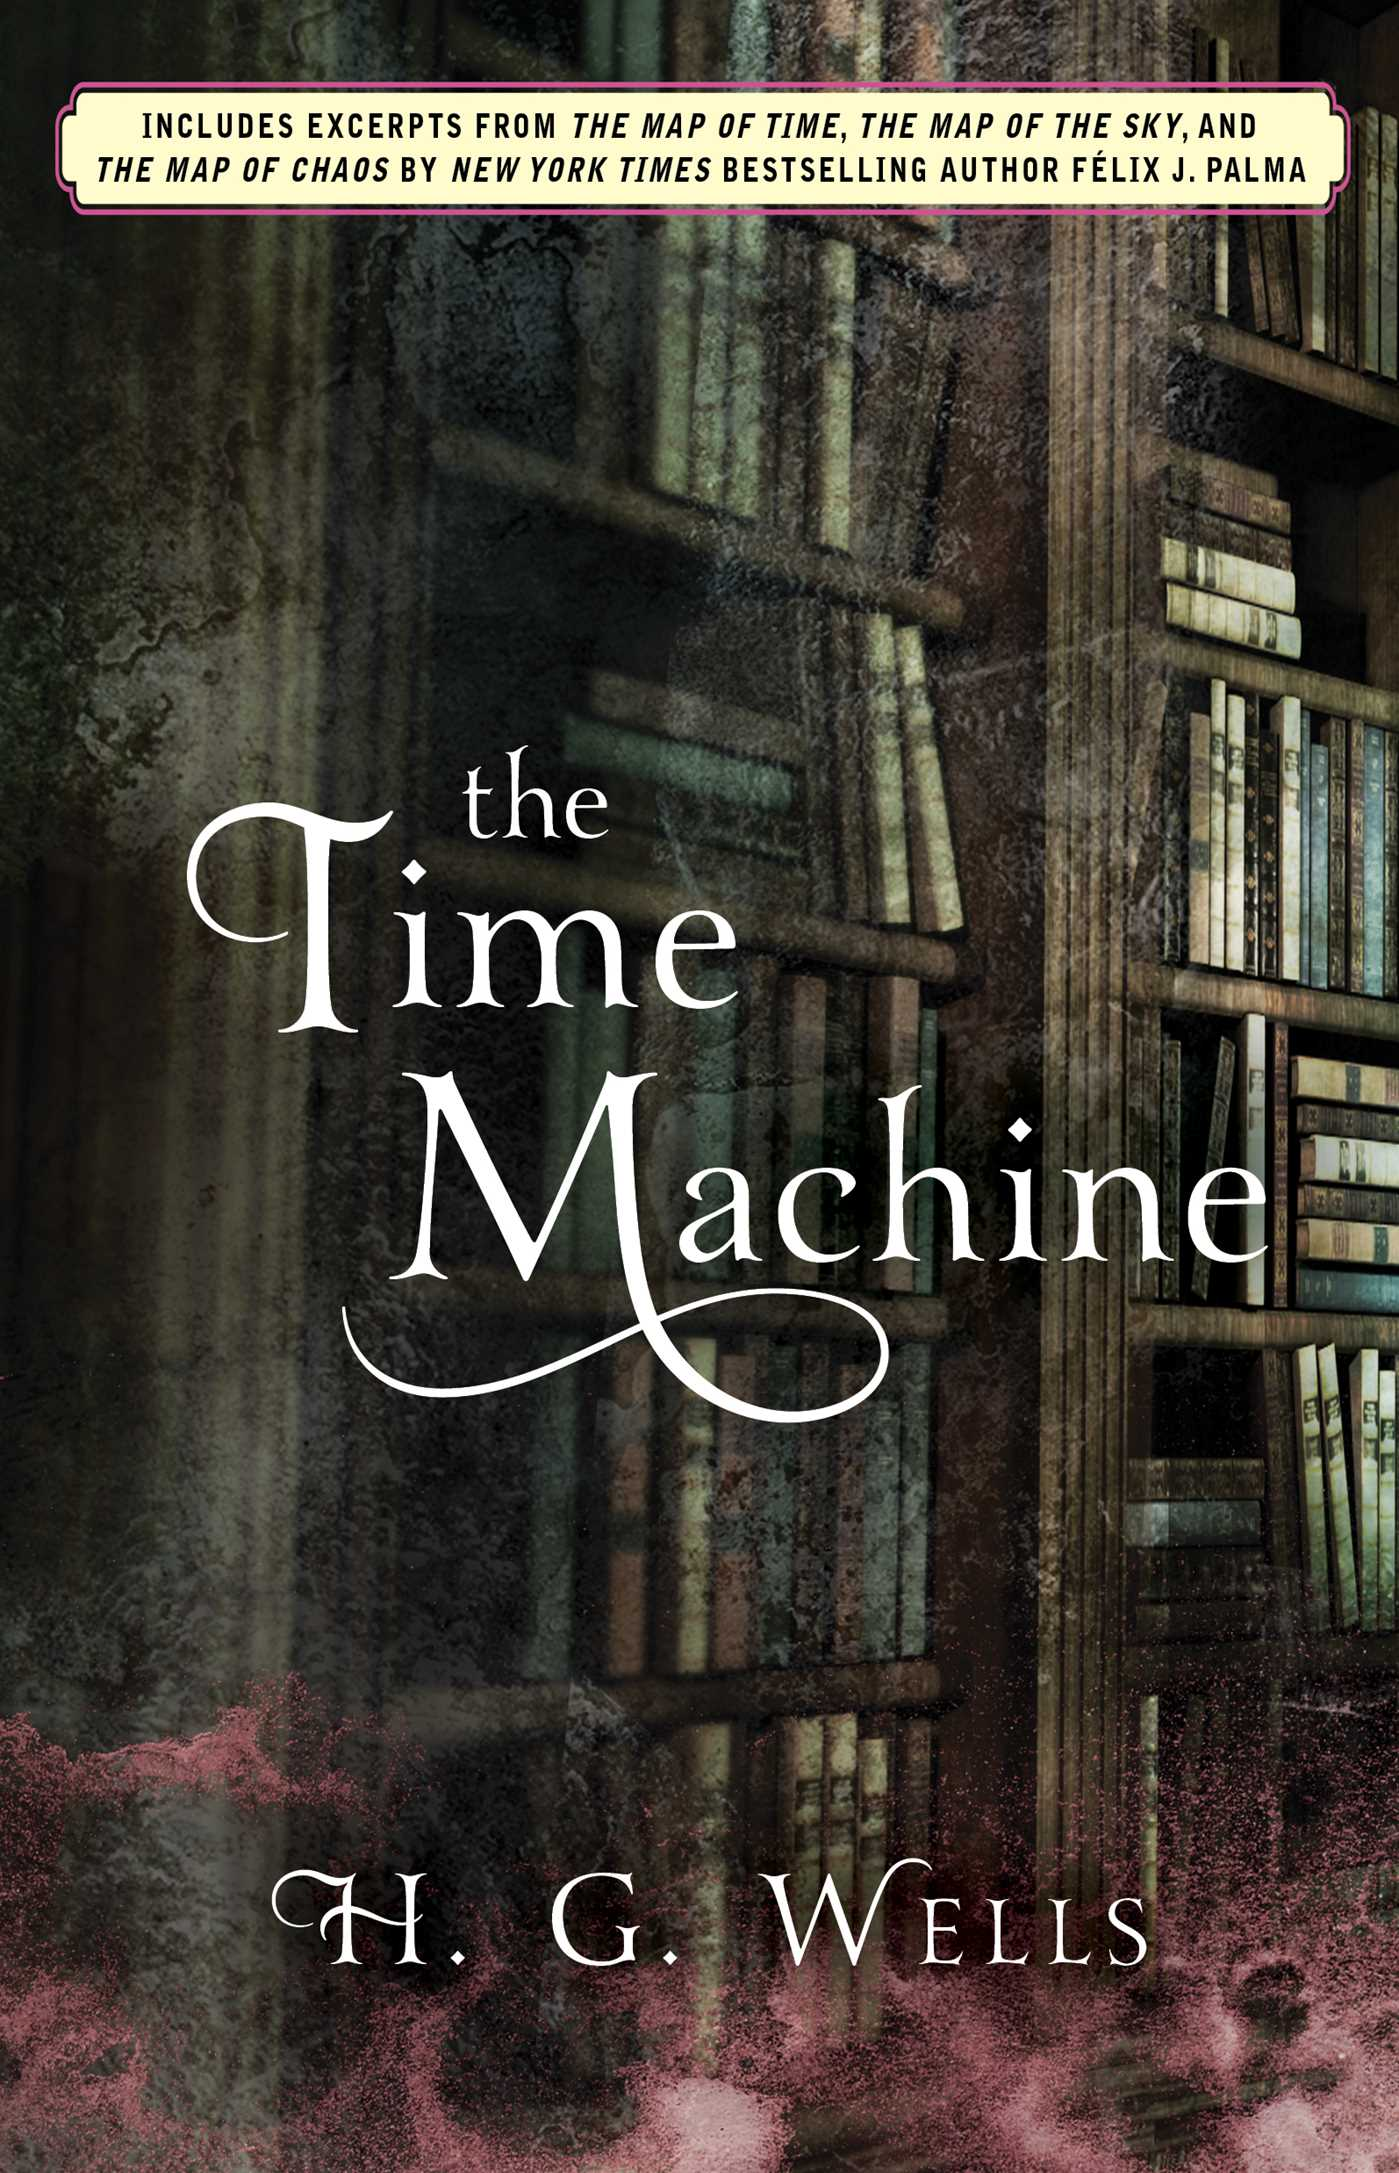 The time machine 9781451658866 hr